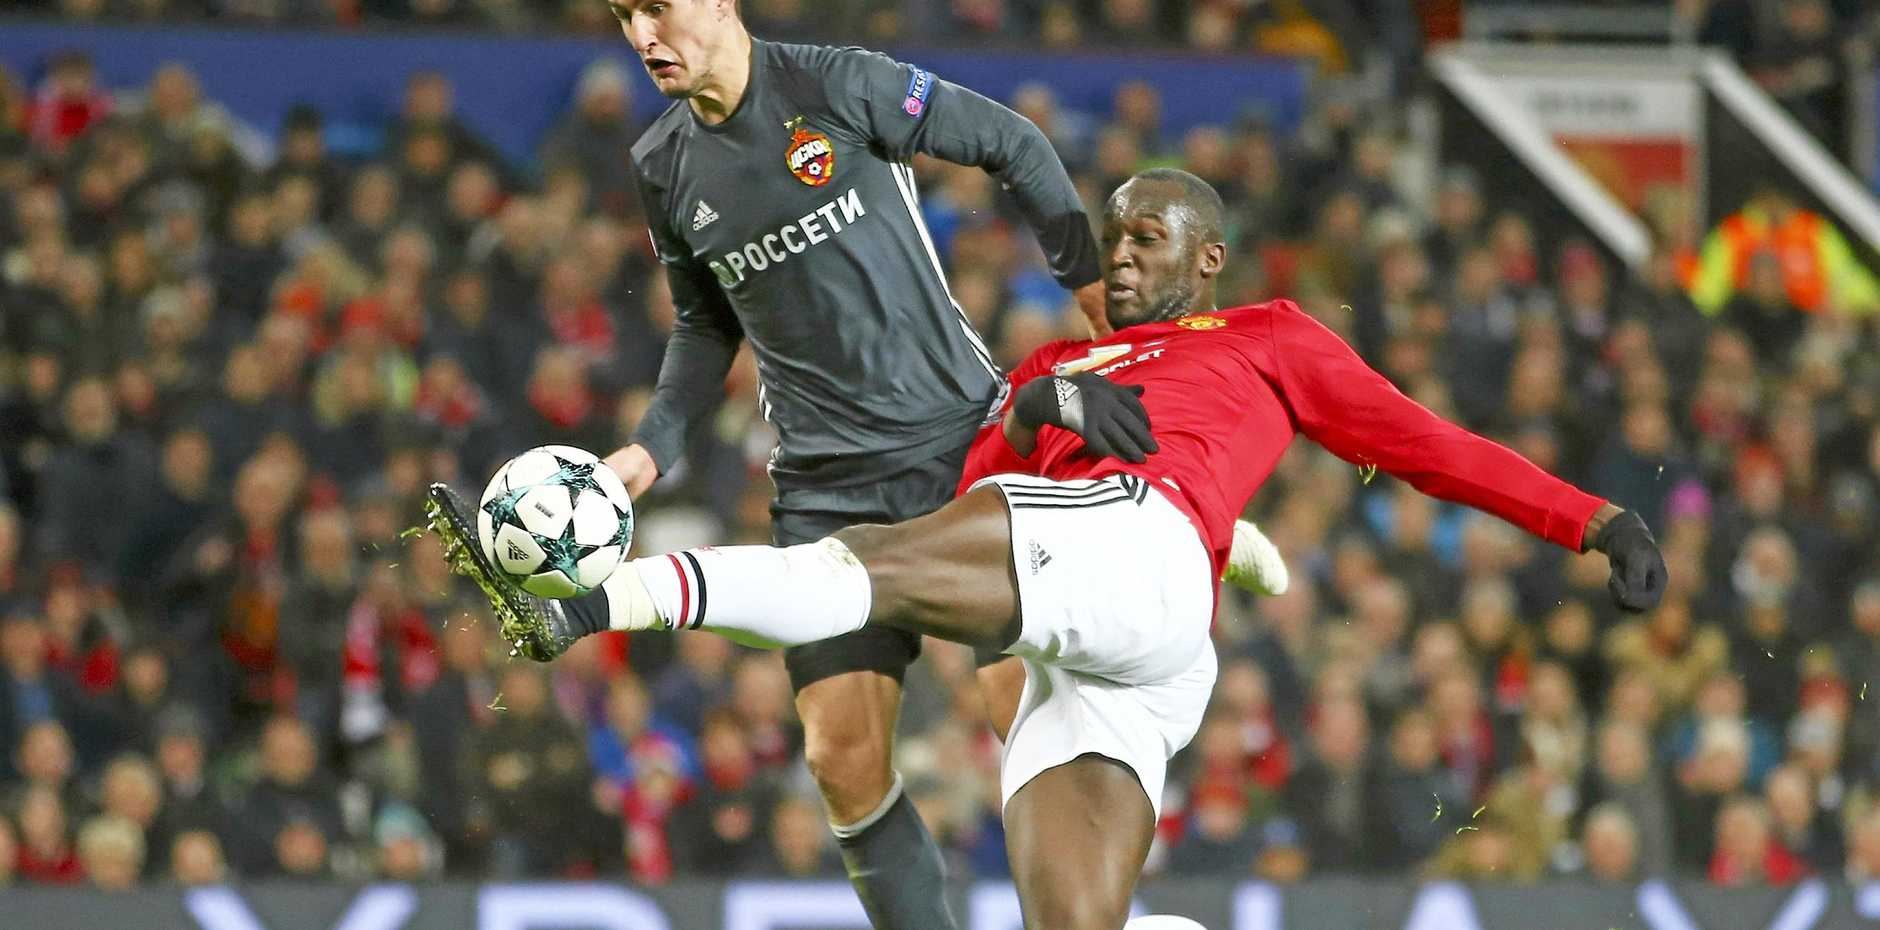 Romelu Lukaku (right) scores Mancherster United's opening goal against CSKA Moscow.